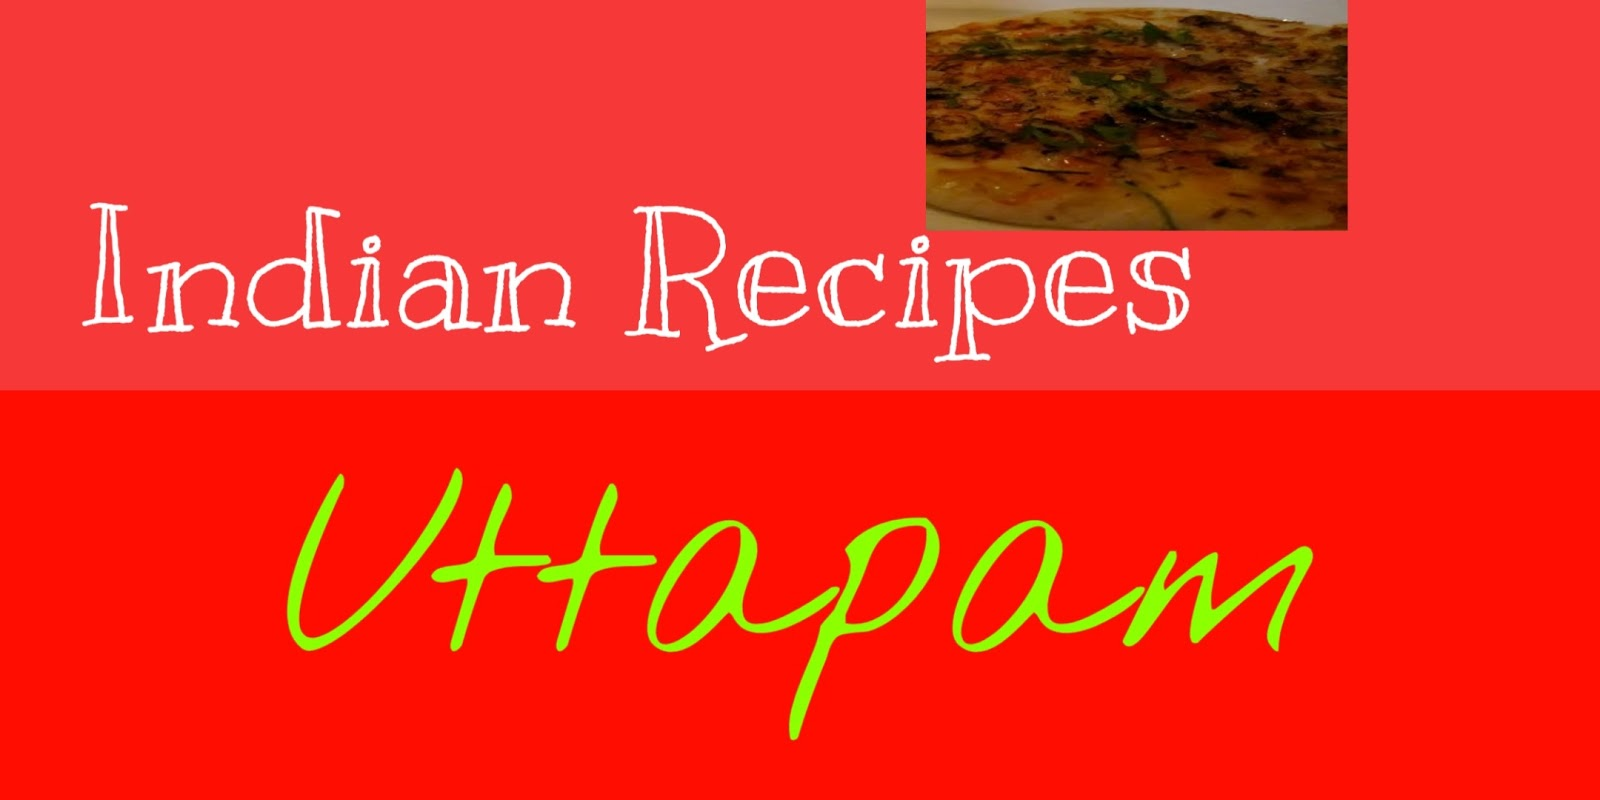 Uttappam | The Great Indian Recipes